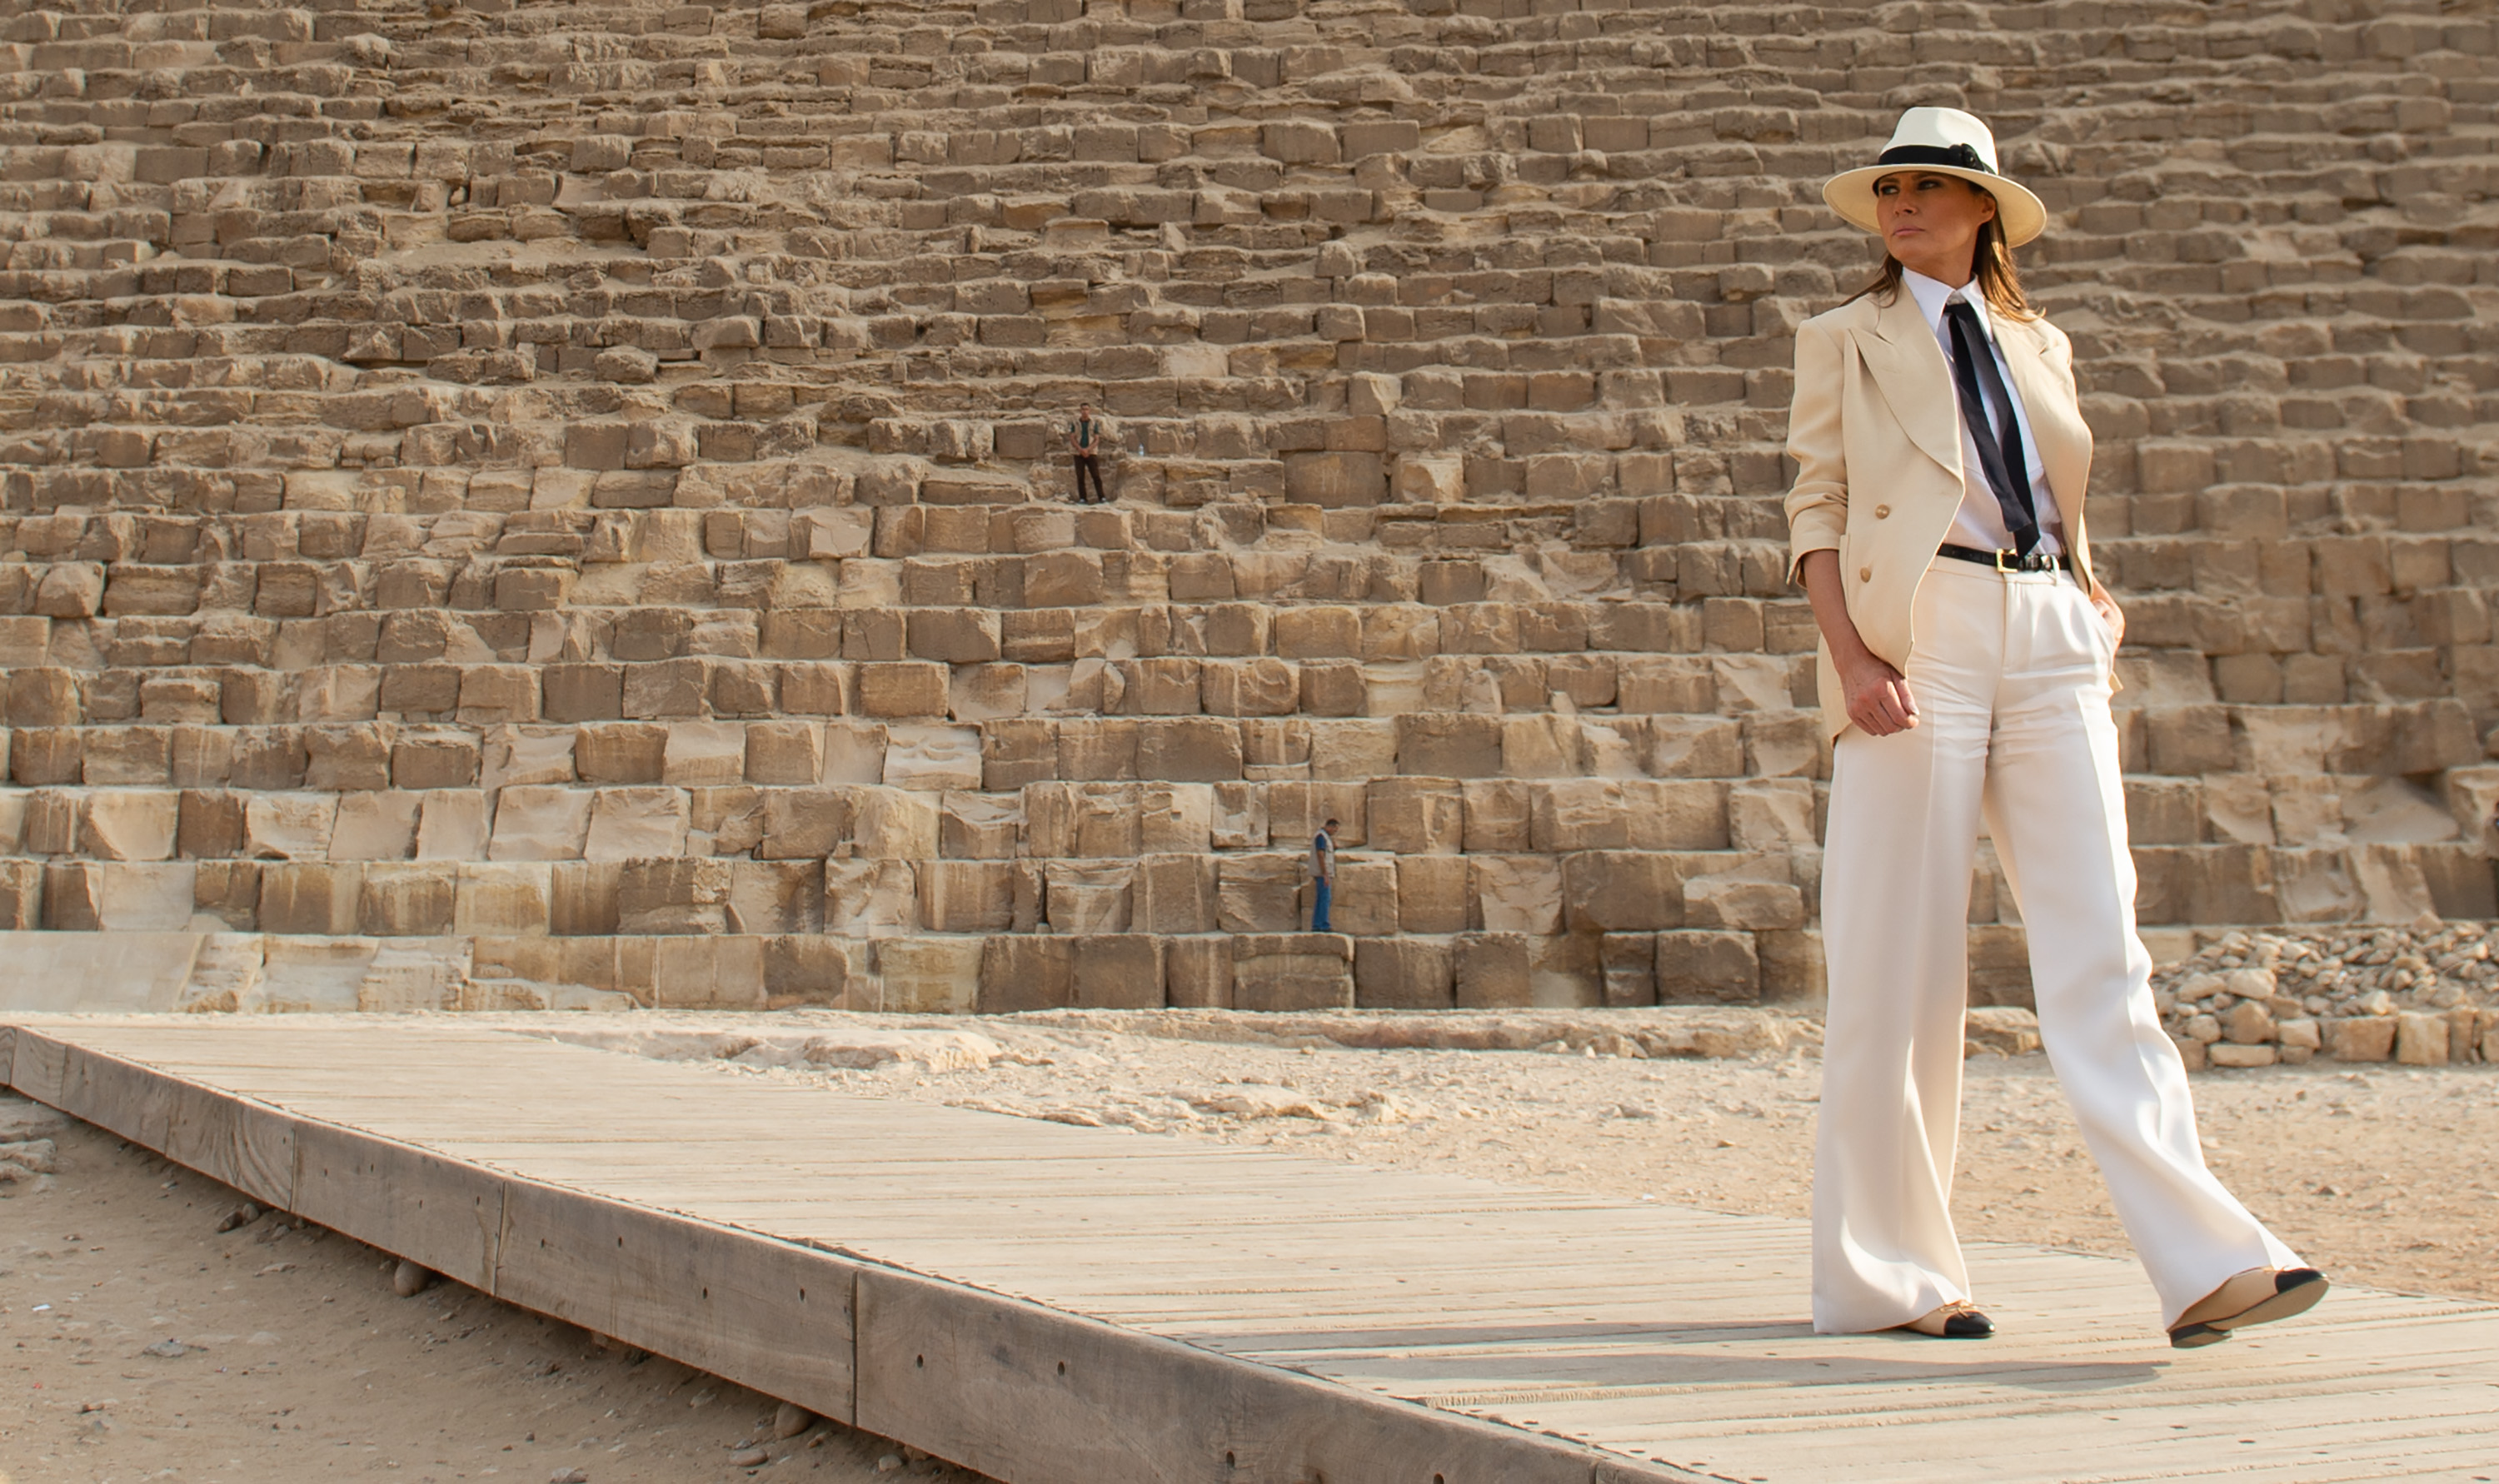 US First Lady Melania Trump stands in front of the Great Pyramid in Giza, Egypt, October 6, 2018, the final stop on her 4-country tour through Africa. (Photo by SAUL LOEB / AFP) (Photo credit should read SAUL LOEB/AFP/Getty Images)